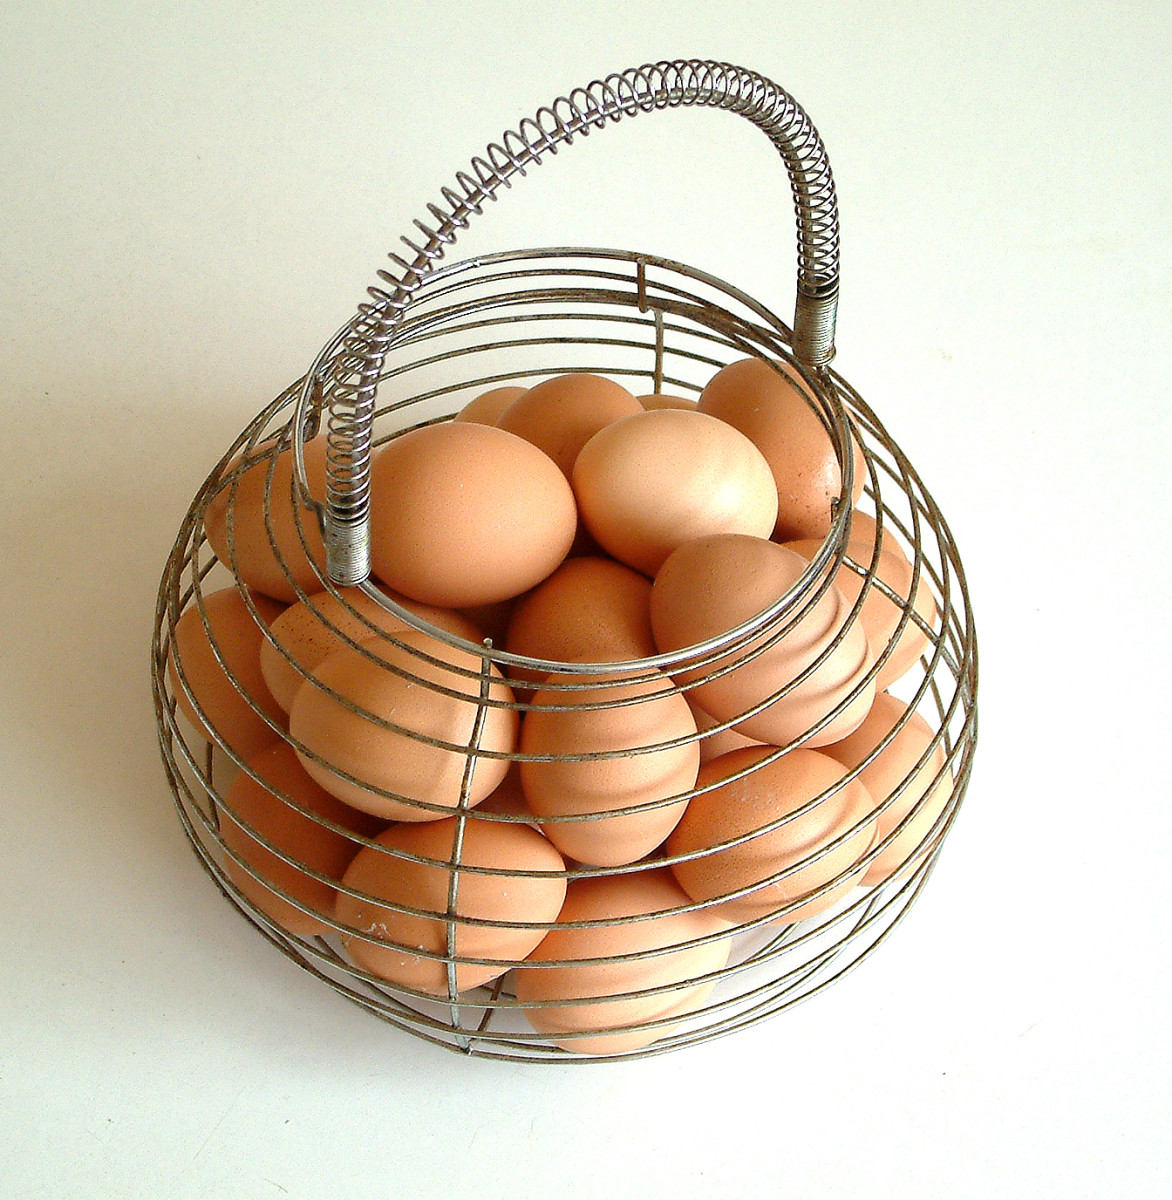 Eggs are nutritious and useful but are allergenic for some people.